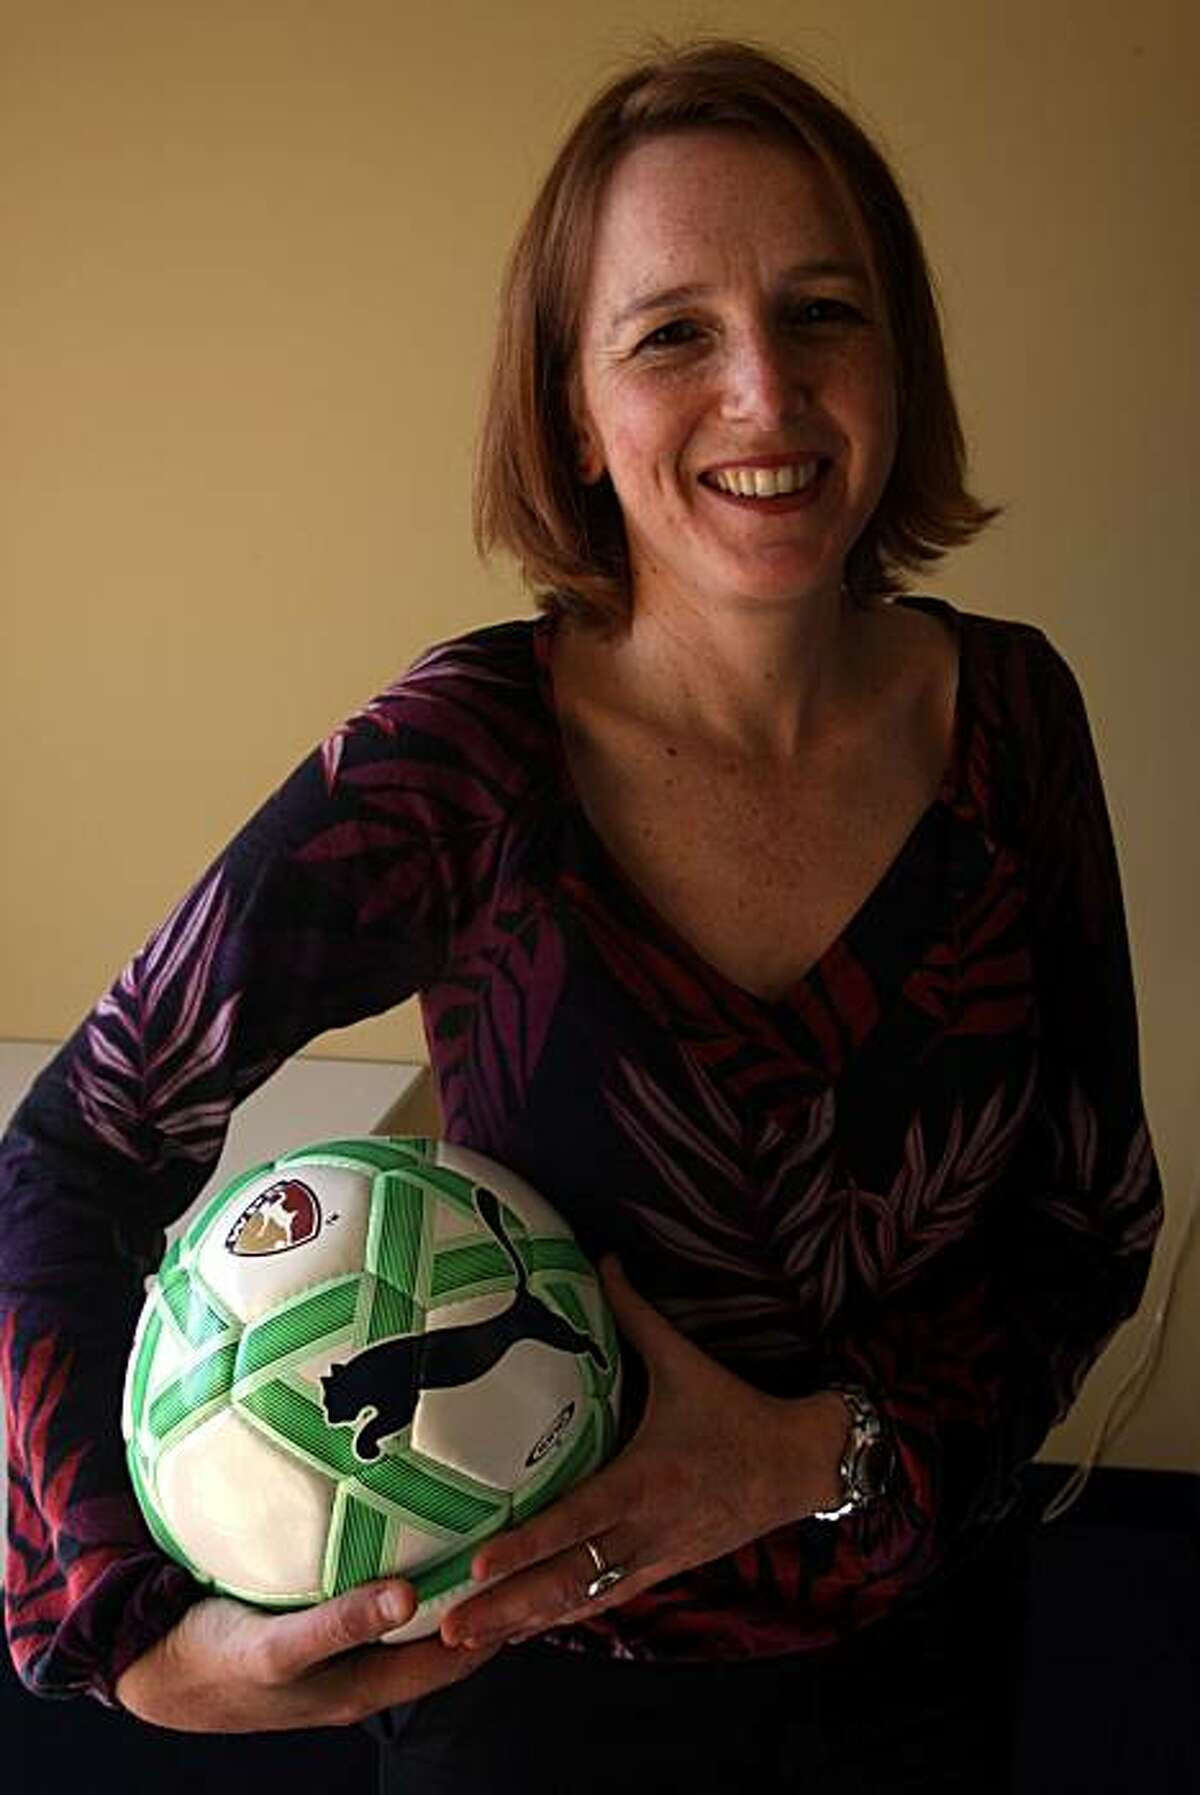 Tonya Antonucci is the commissioner of Women's Professional Soccer at her office in San Francisco, Calif., on Thursday, March 26, 2009.